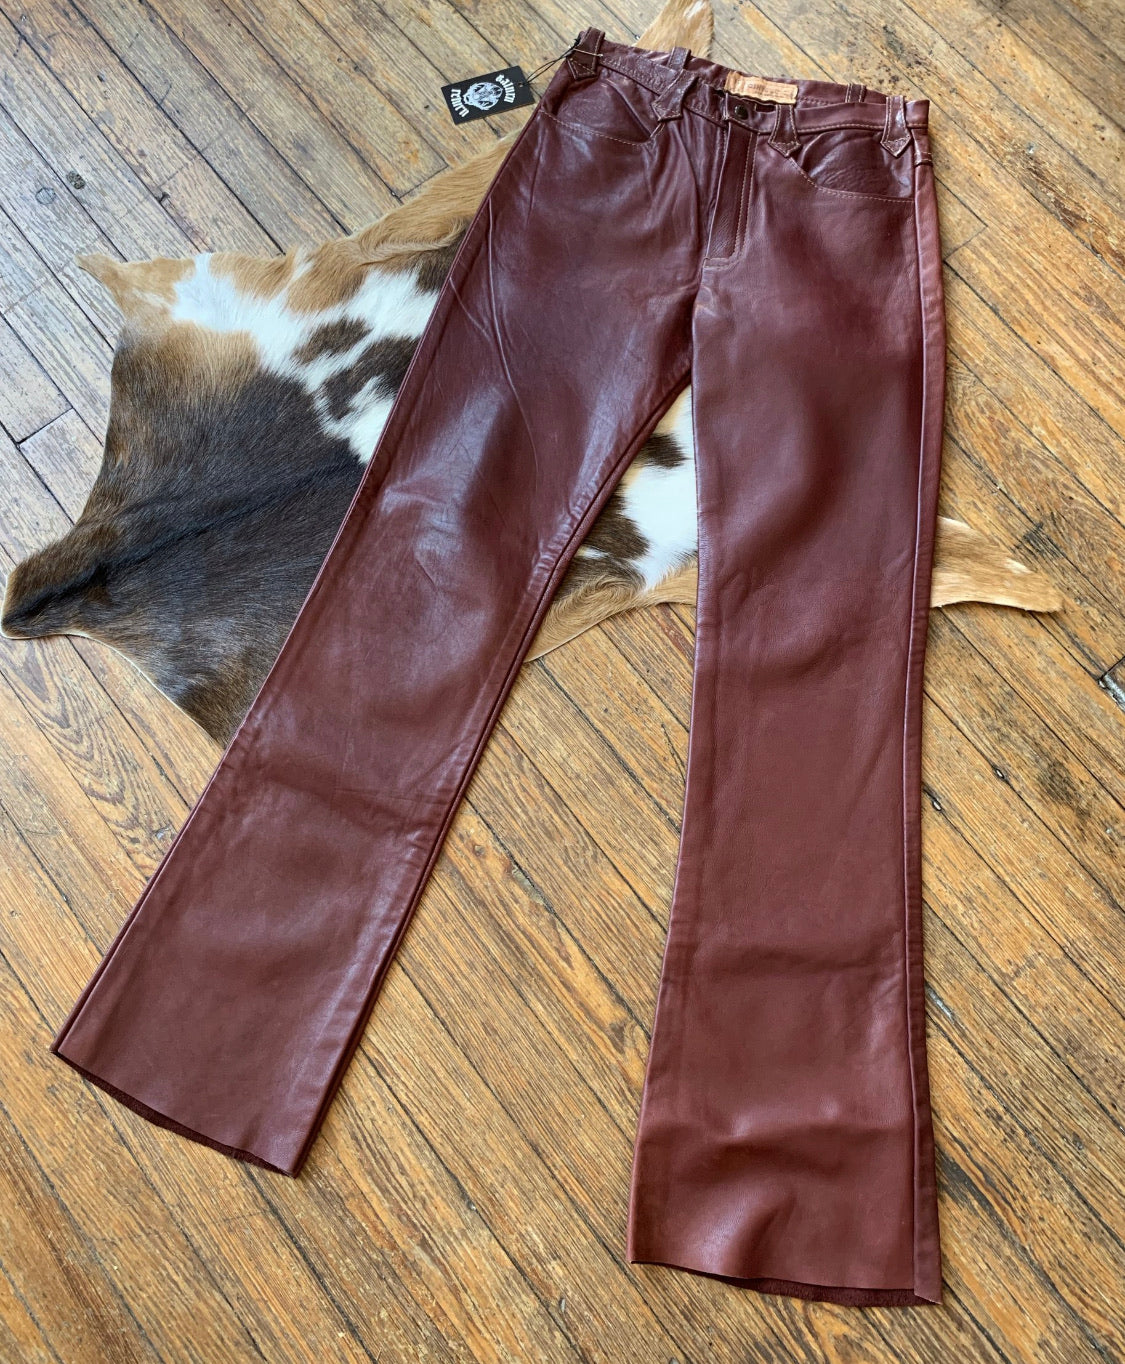 Vintage Oxblood Leather Flare Pants